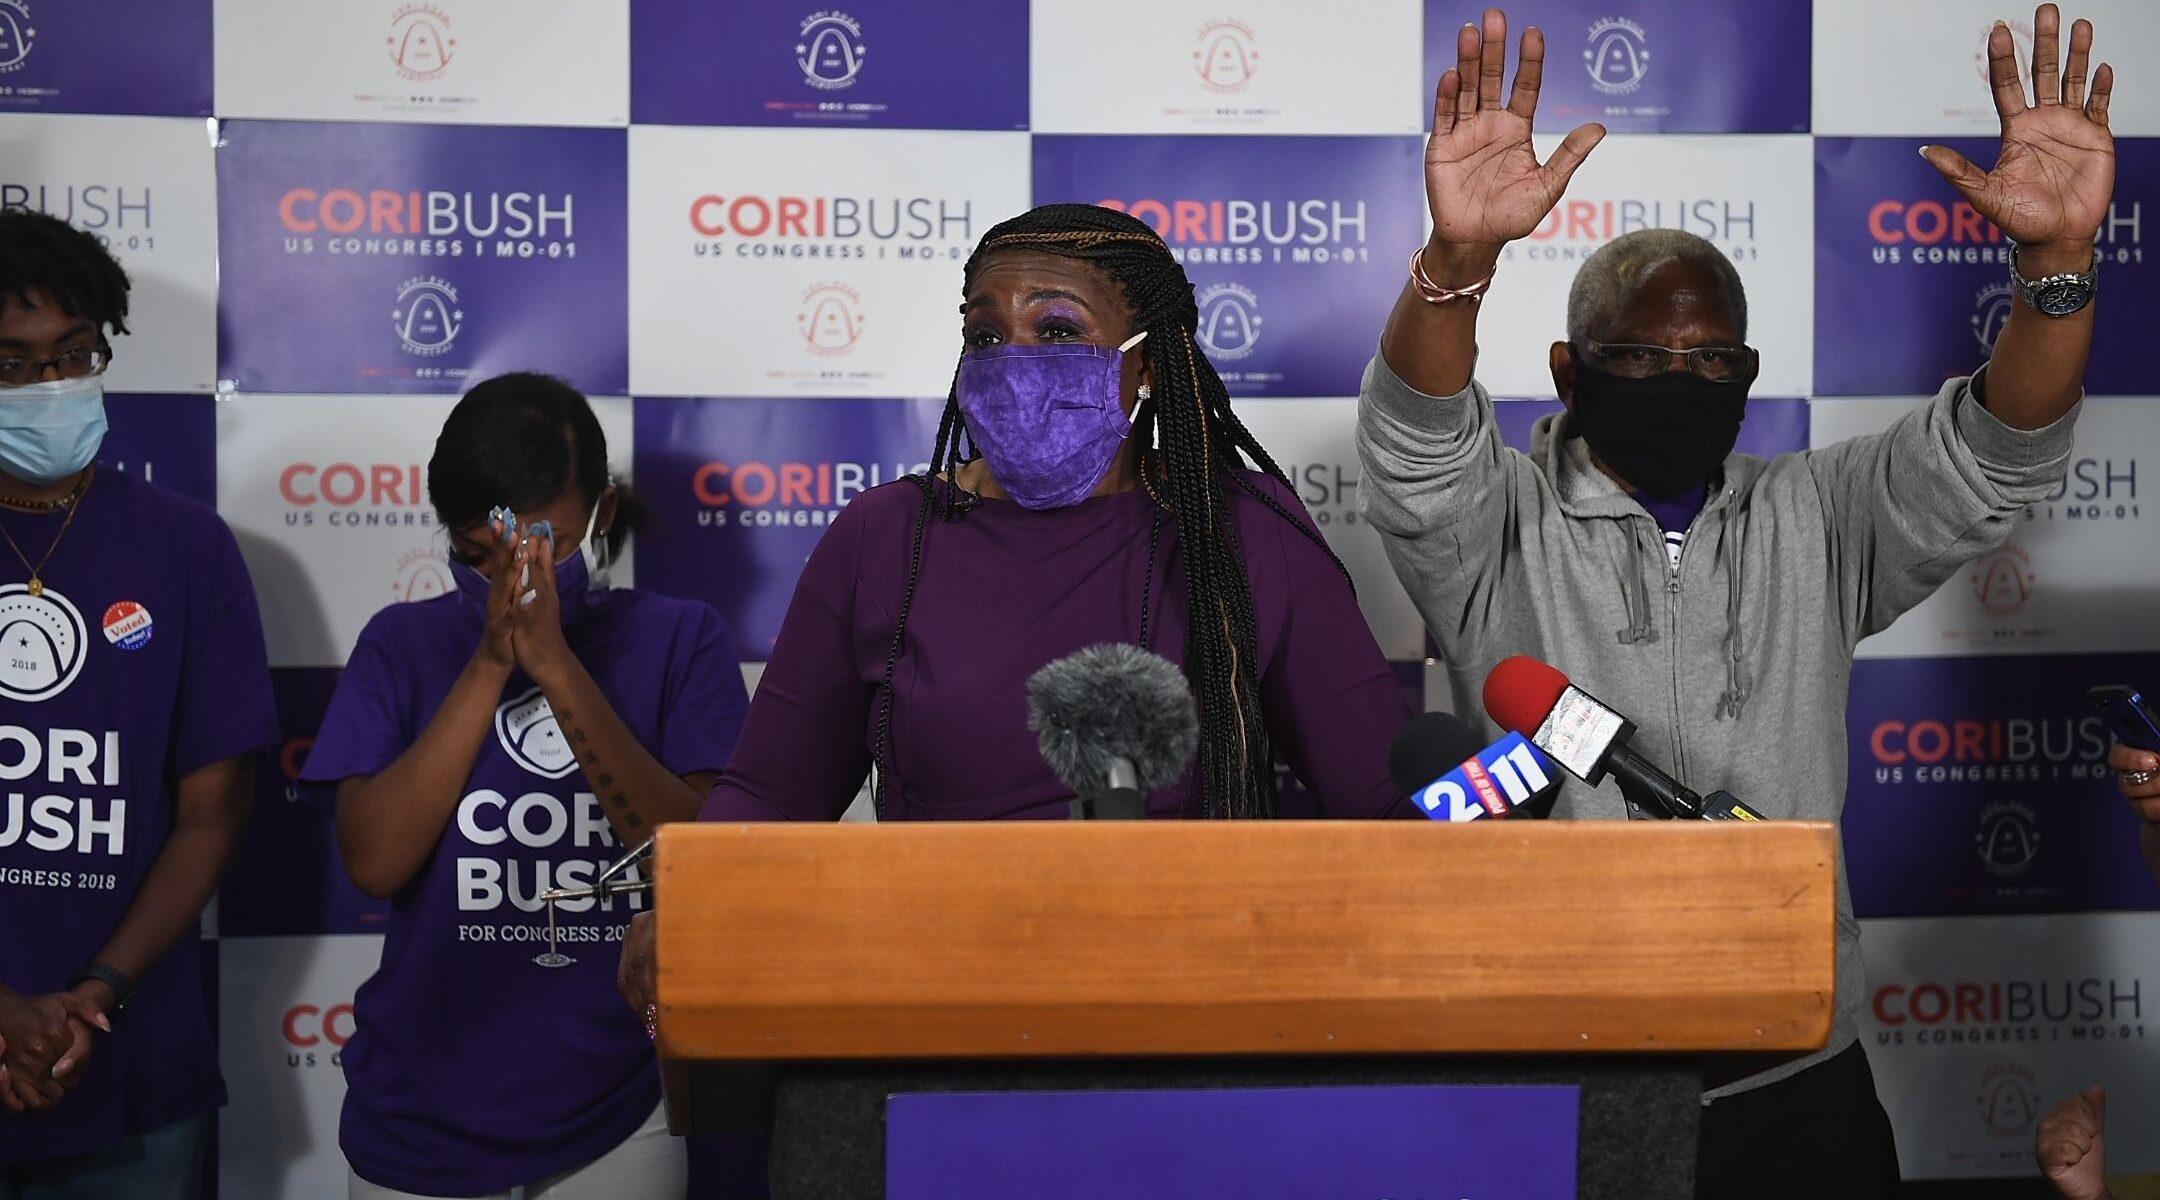 a black woman in a facemask speaks at a podium